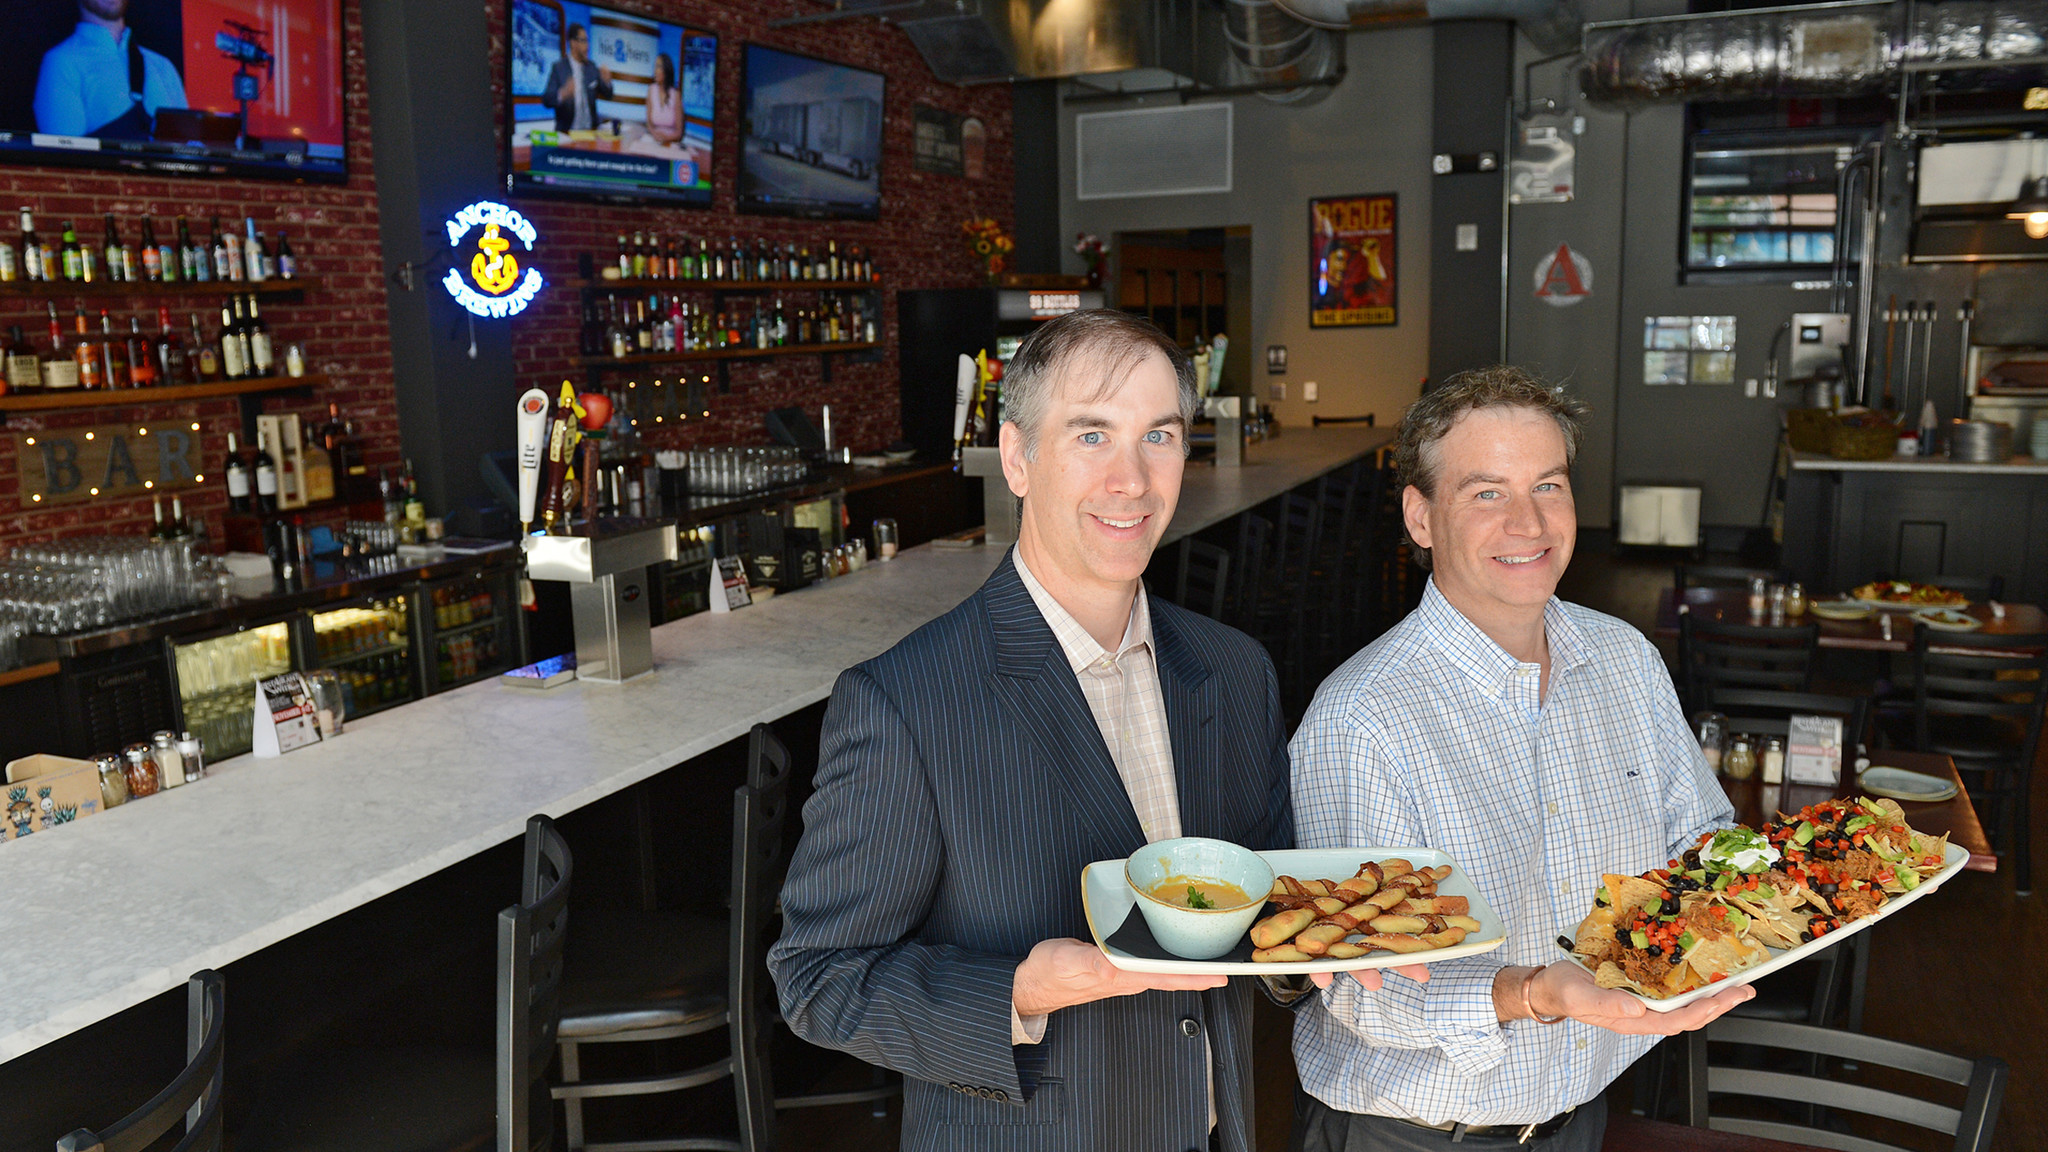 Gastropub 99 Bottles To Debut Today In Downtown Allentowns Former Crust Spot